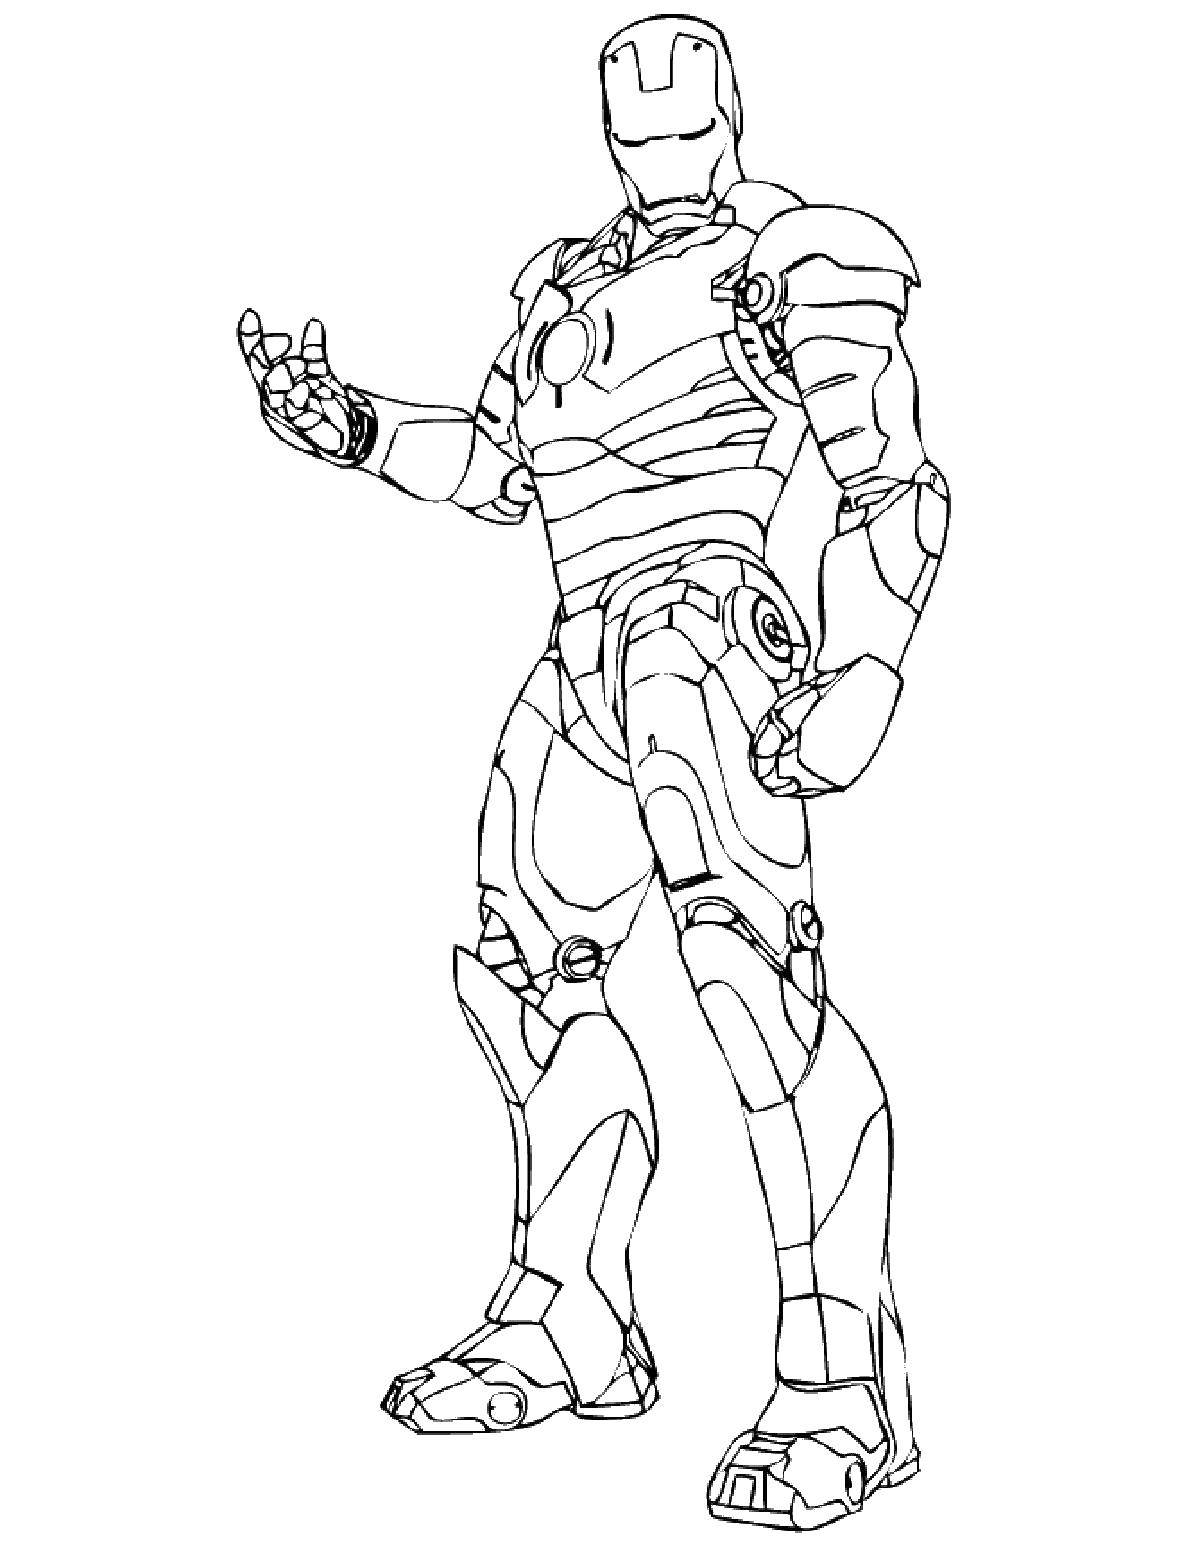 iron man coloring pages endgame avengers endgame colouring pages printable coloringpages2019 iron coloring pages man endgame